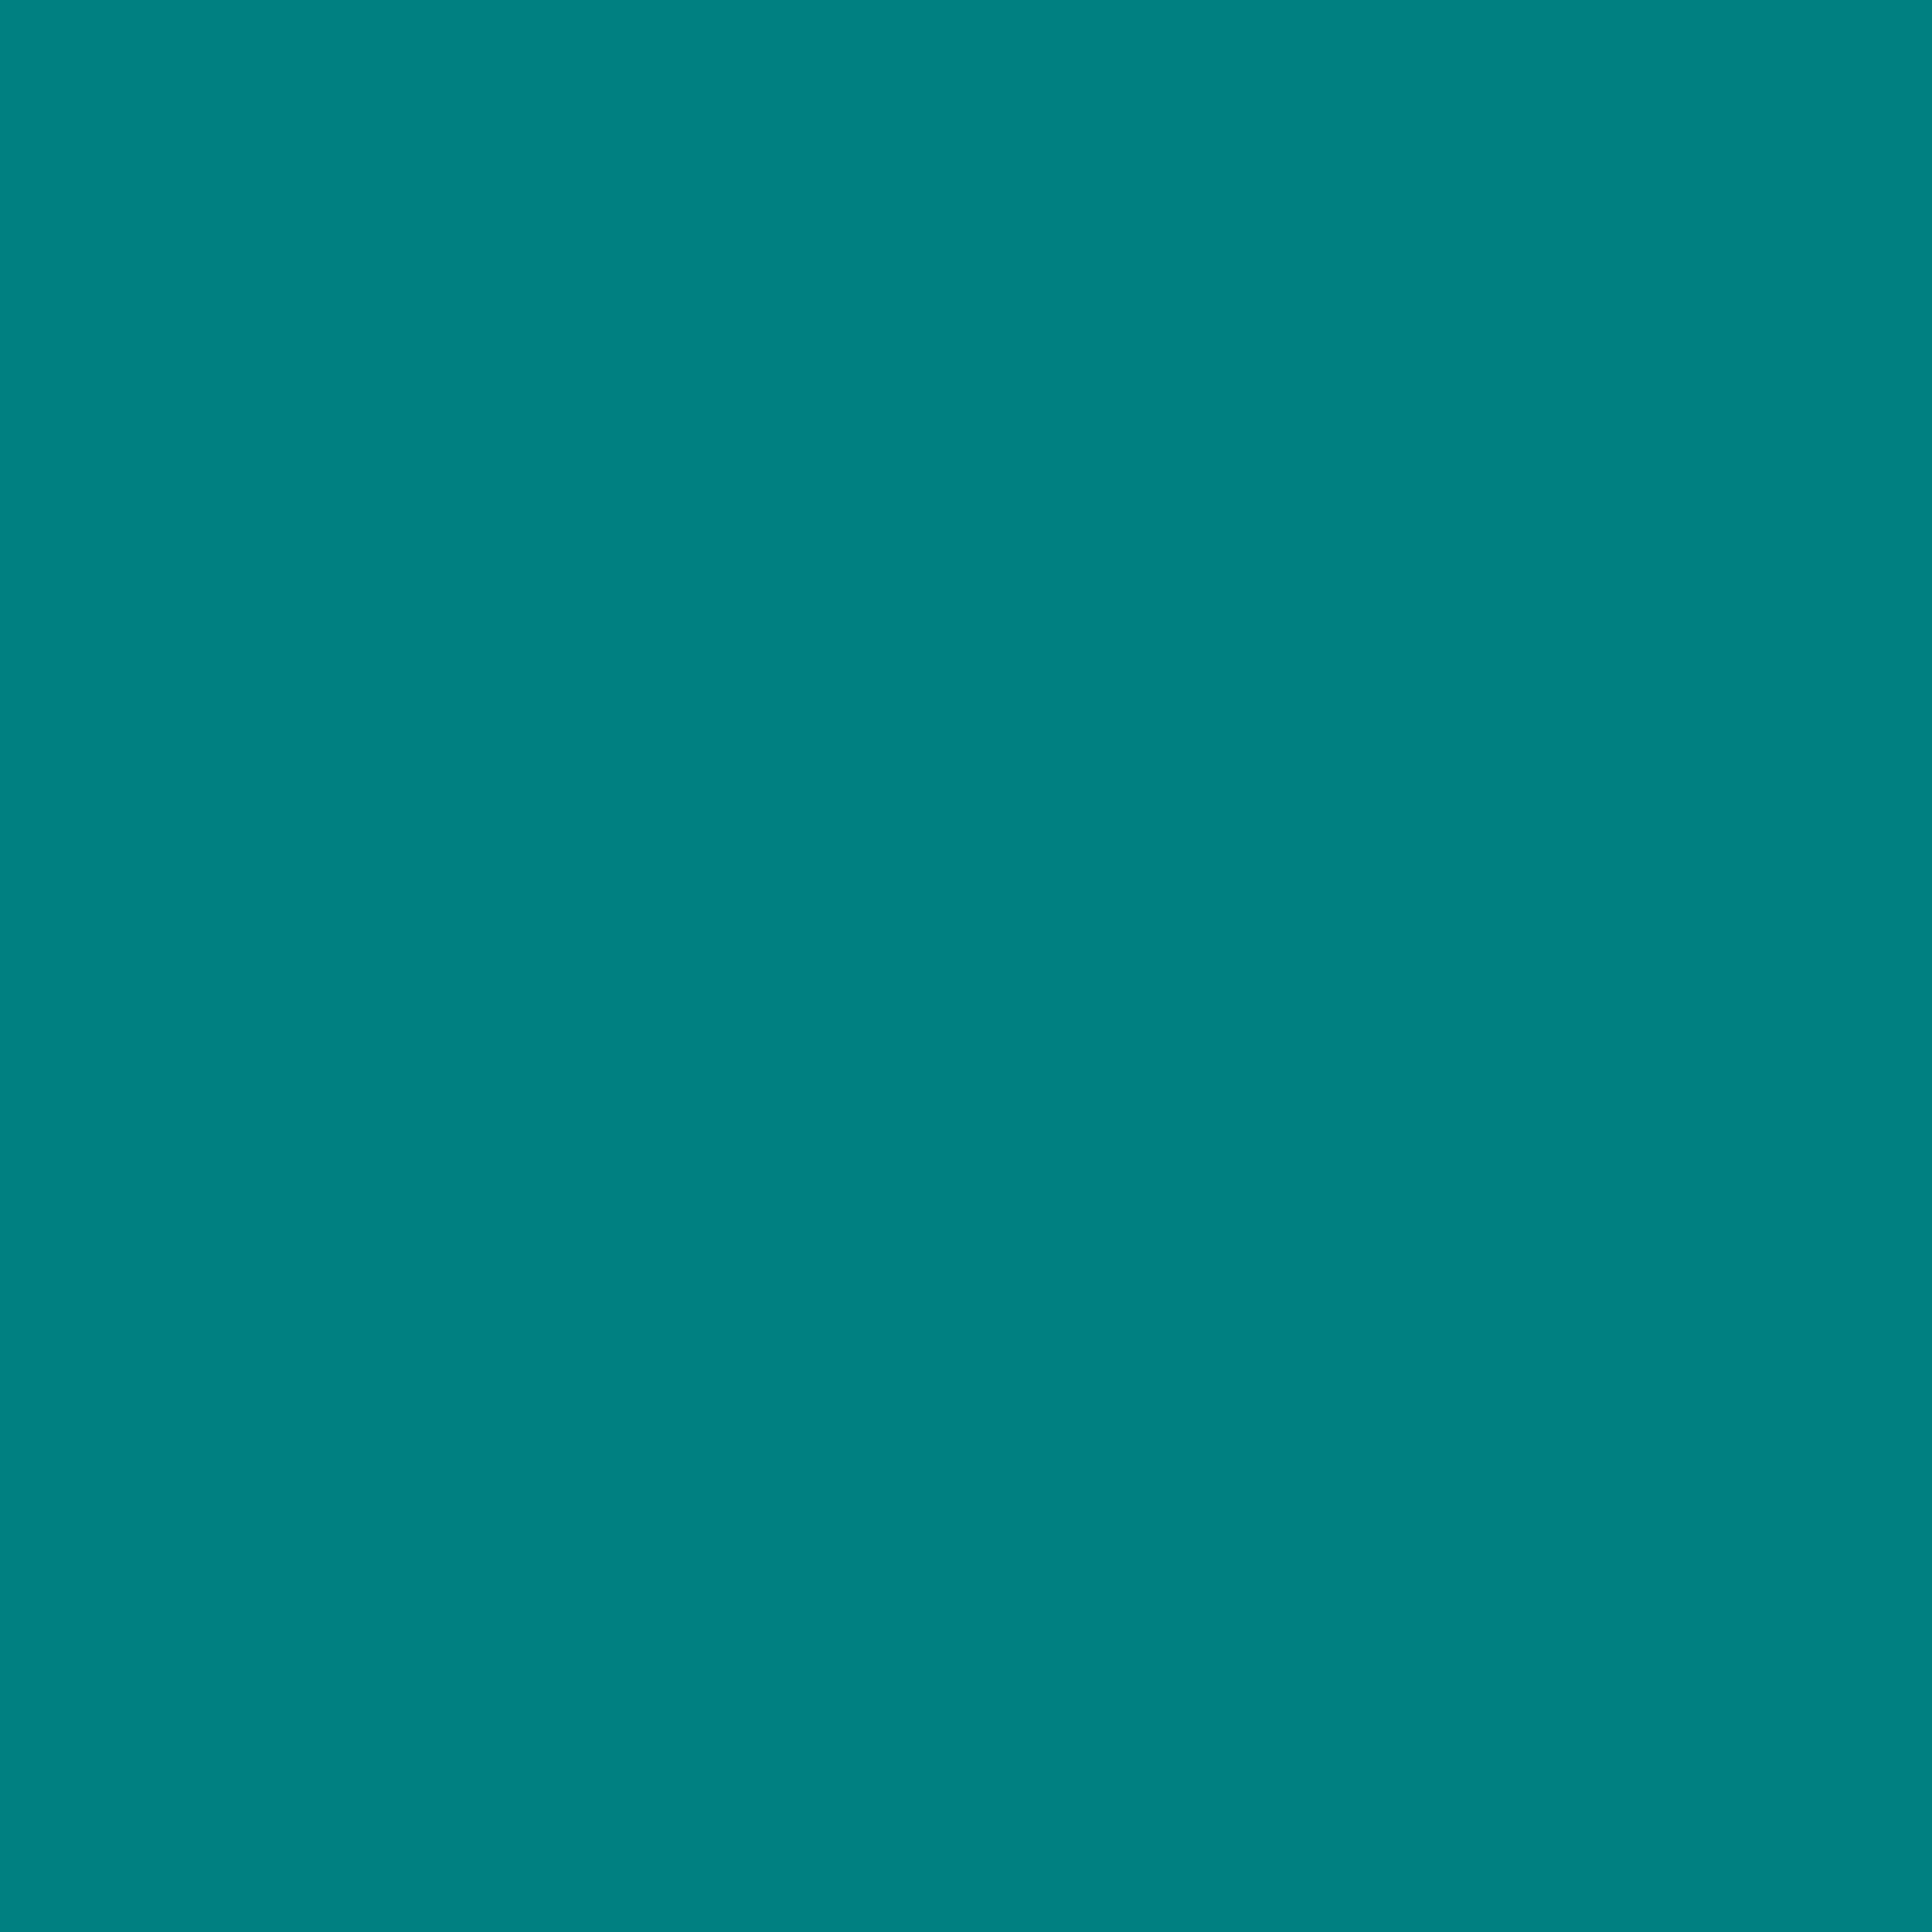 3600x3600 Teal Solid Color Background